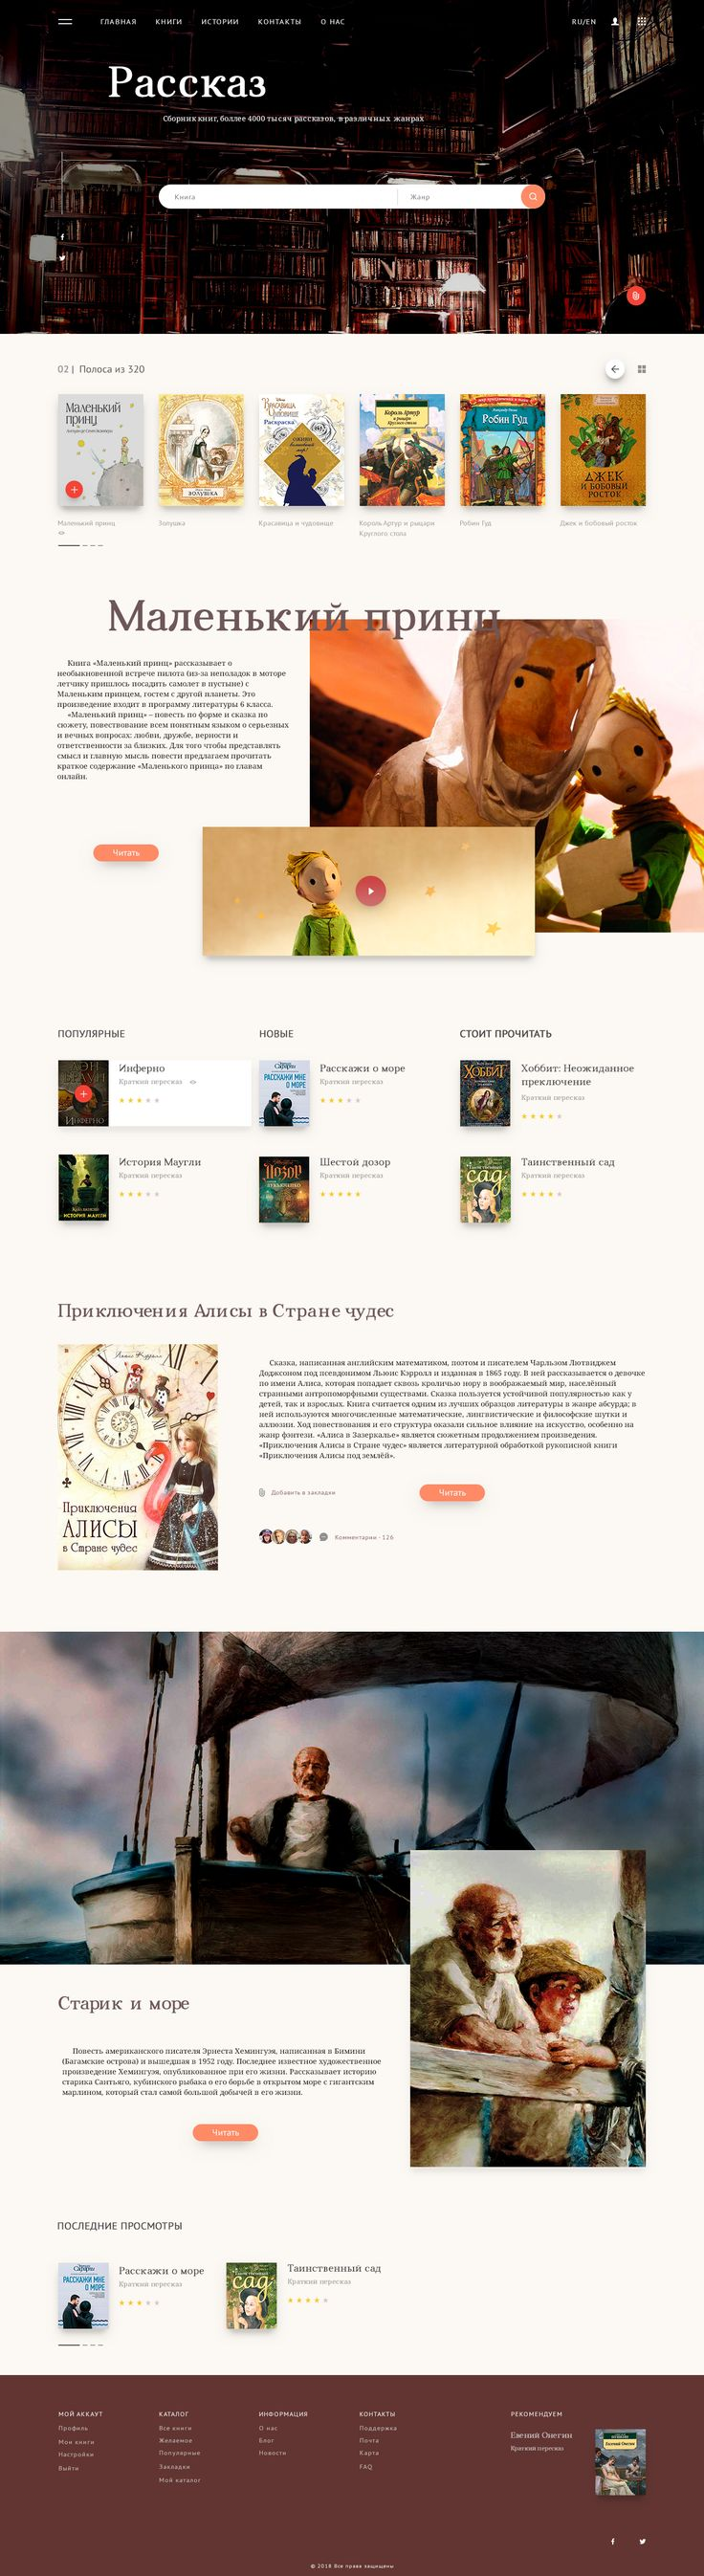 The Story | Web project-eBooks | UI/UX web design UI/UX interaction design mobile brands inspiration russian website